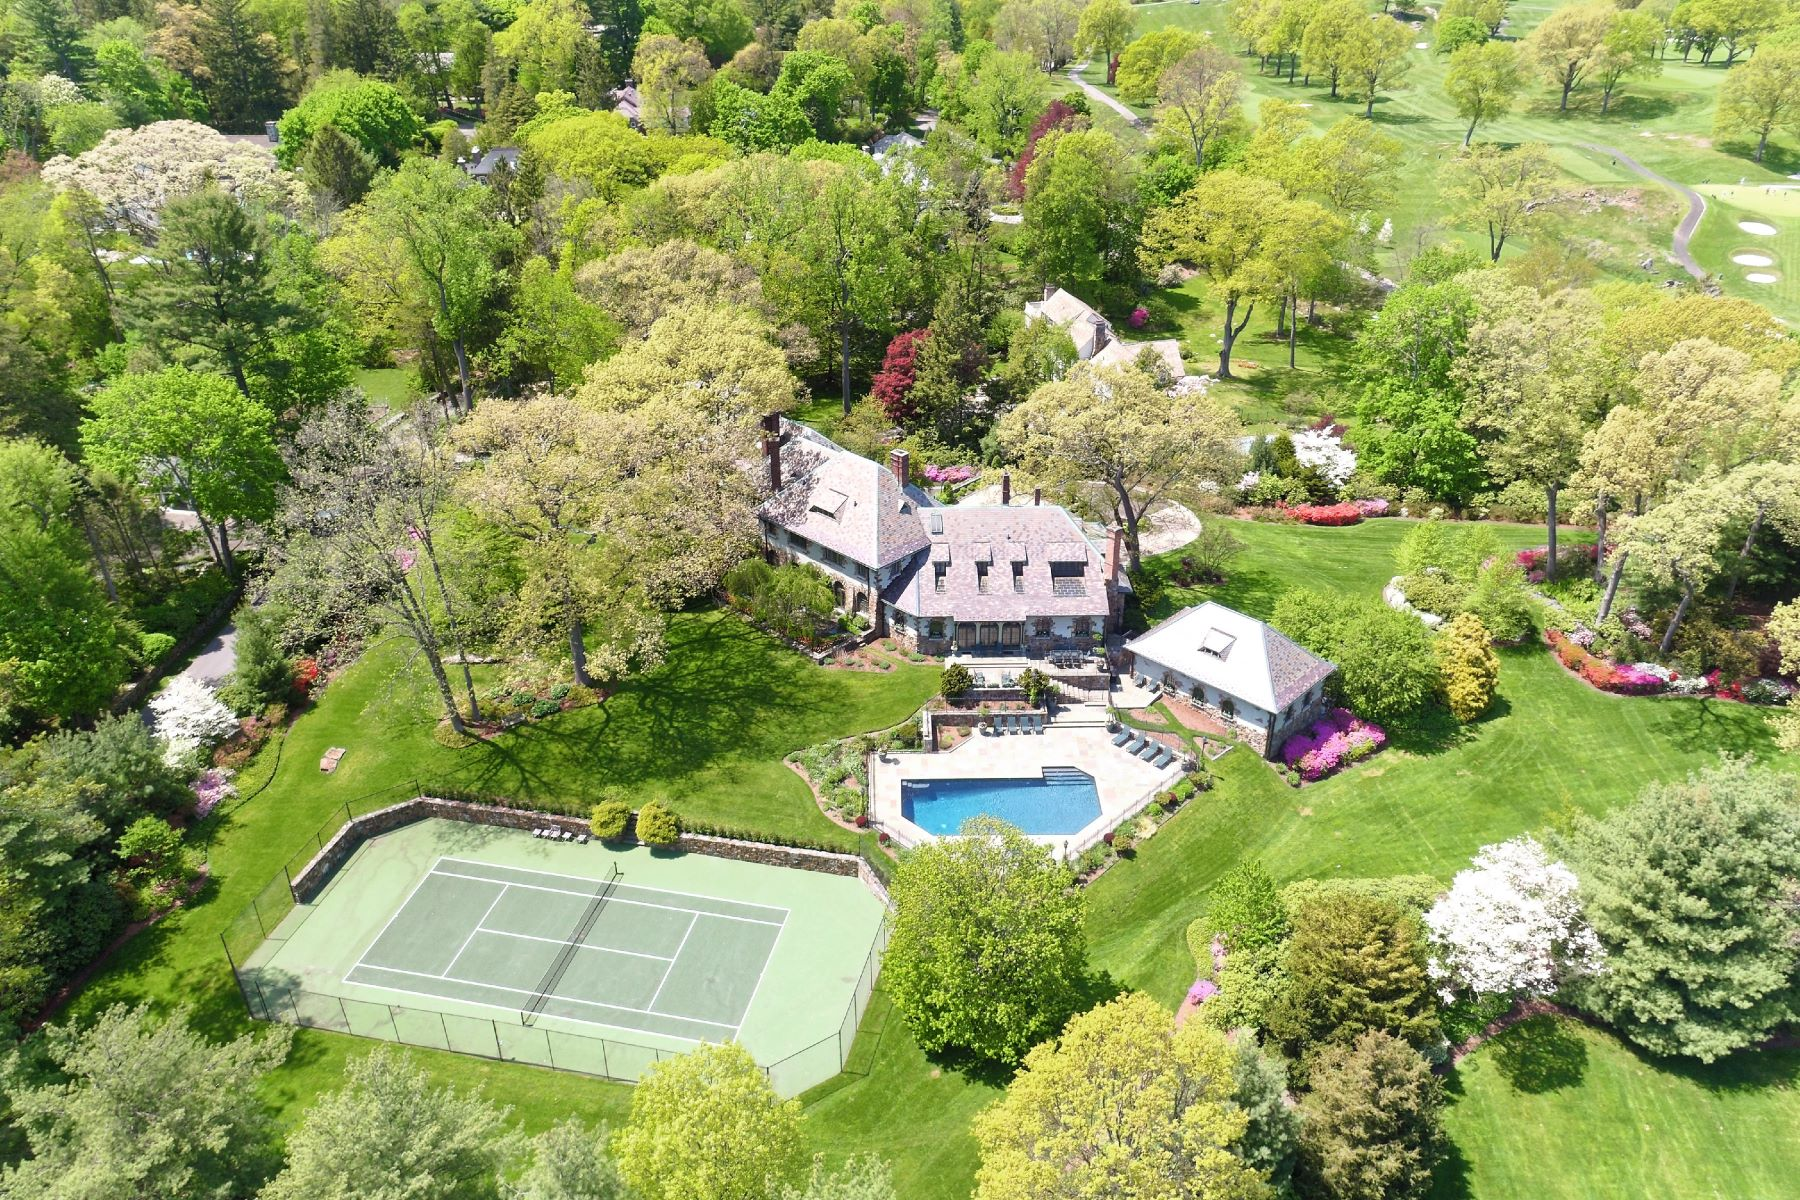 Single Family Homes for Sale at 2 Sunset Lane Rye, New York 10580 United States